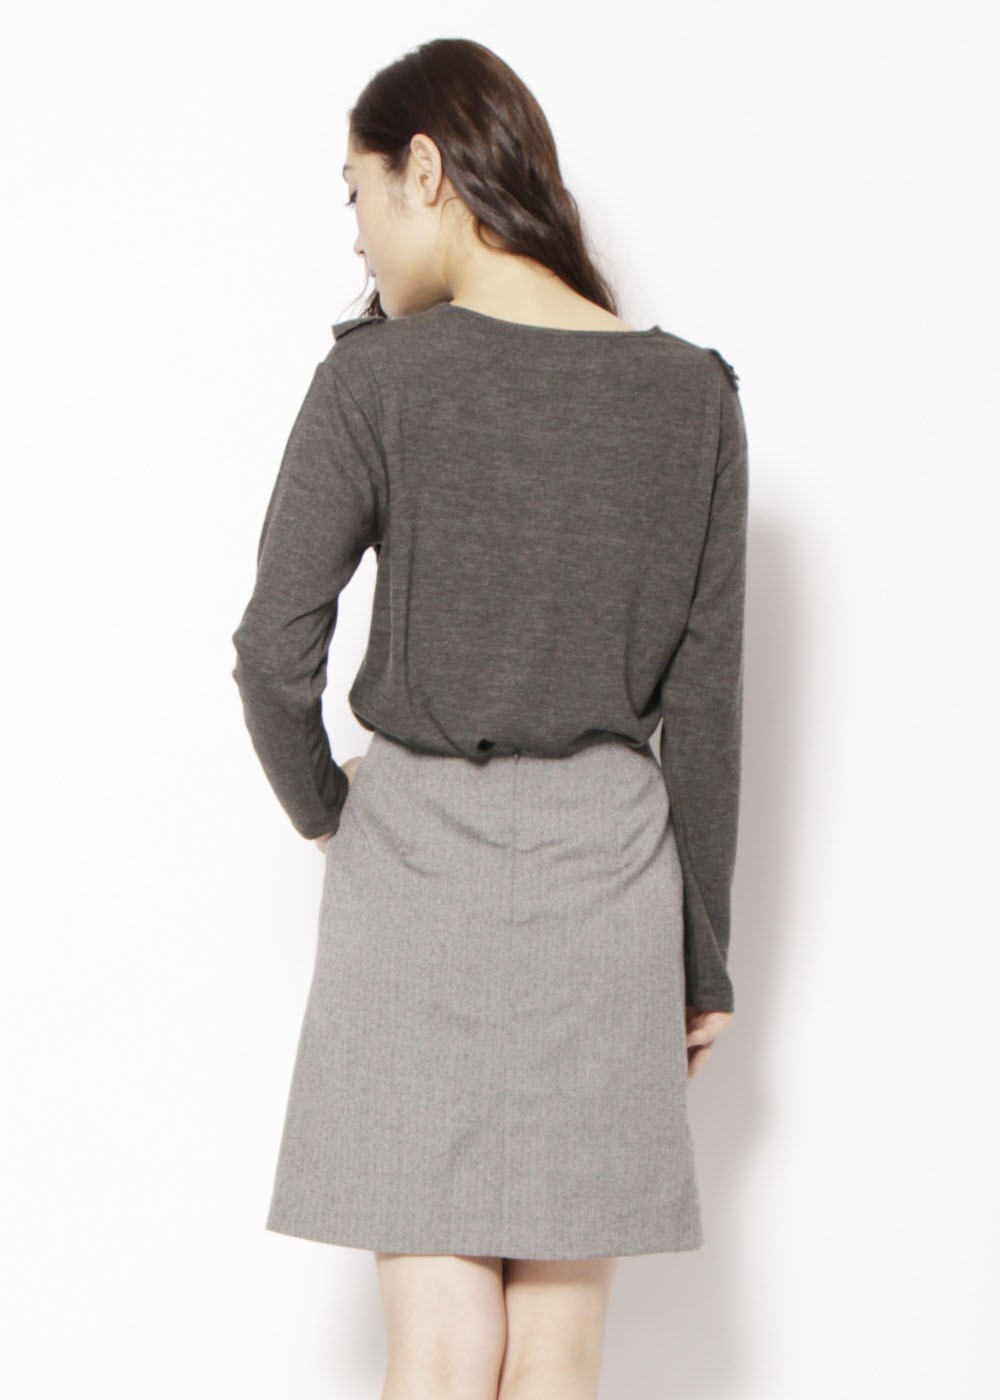 KBF+ フロントフリルカットソー|BROWN|Tシャツ|URBAN RESEARCH warehouse Tops&Outer|最大80%OFF